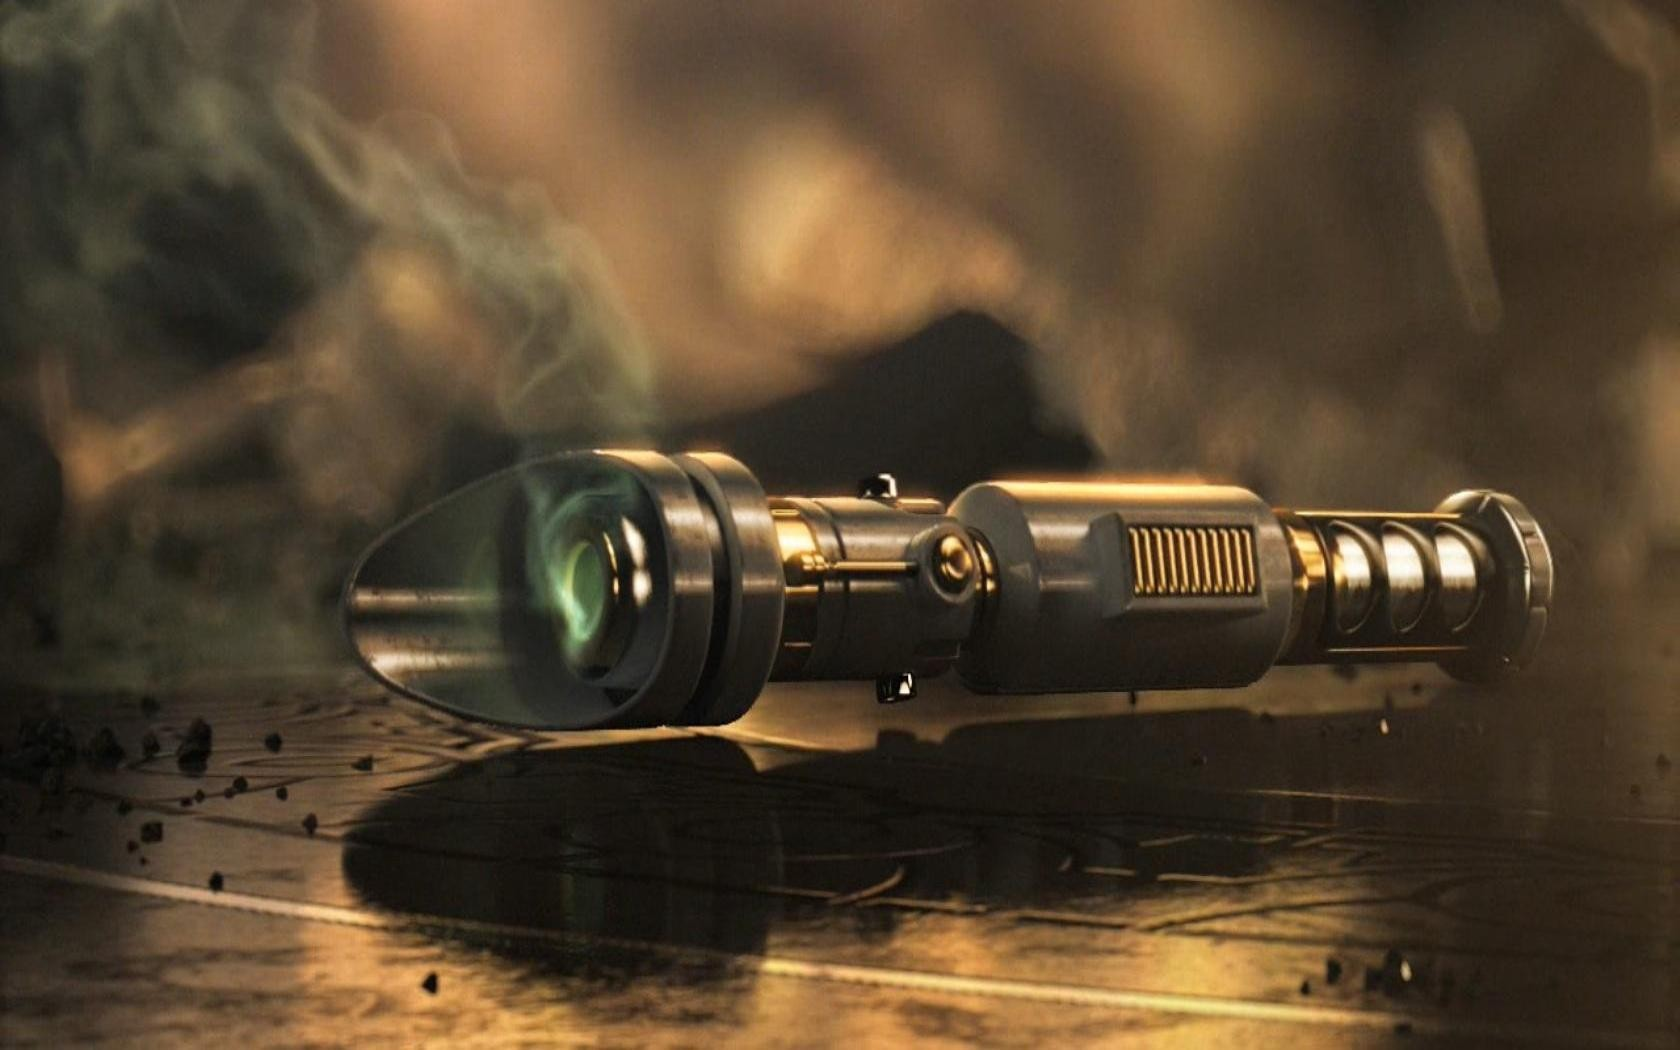 Star Wars Lightsaber Wallpaper 6 1680x1050